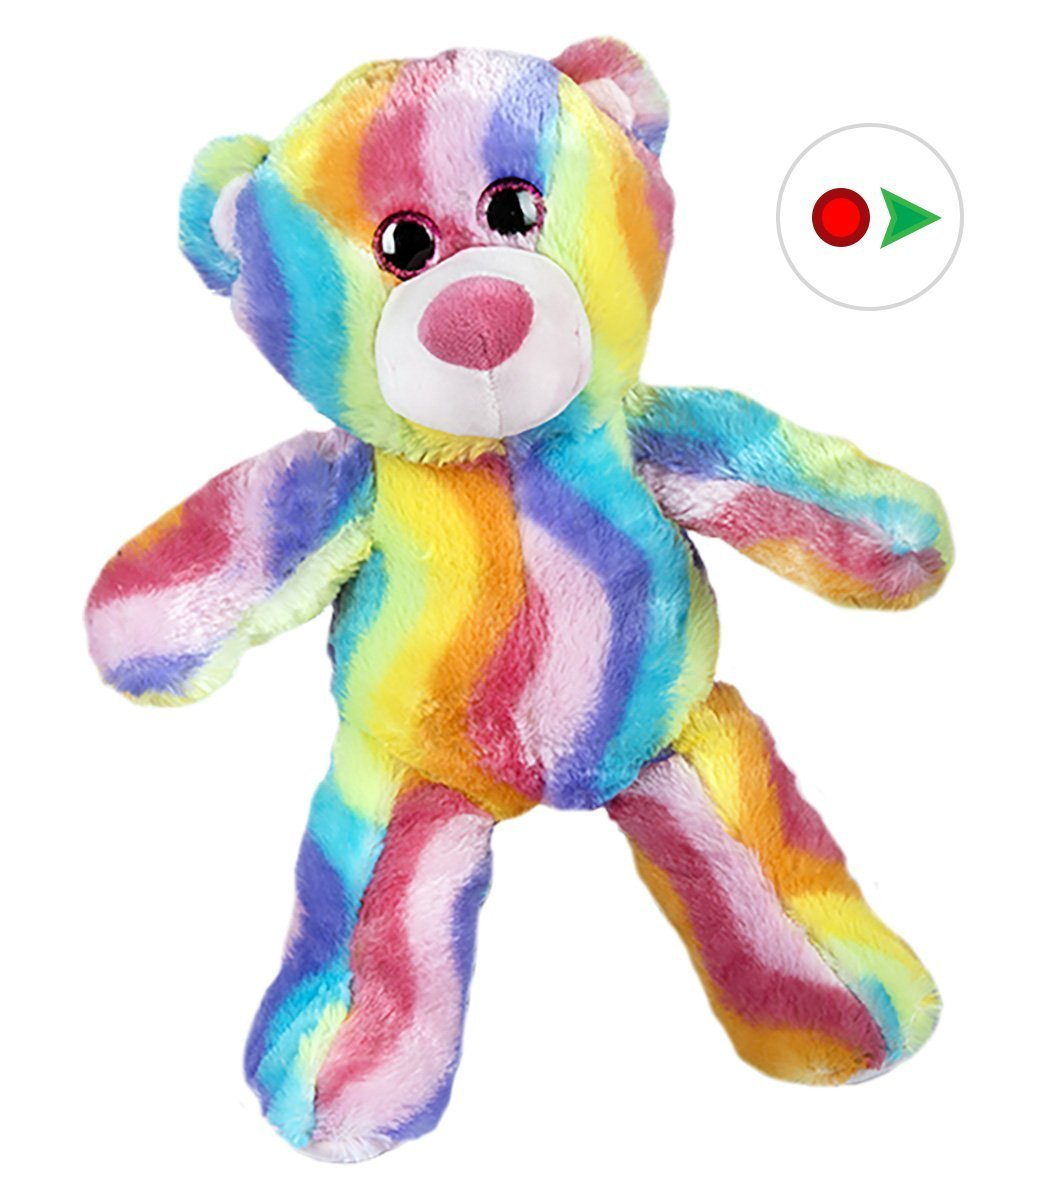 Record Your Own Plush 16 inch Rainbow Stripe Teddy Bear Ready To Love In A Few Easy Steps by Teddy Mountain